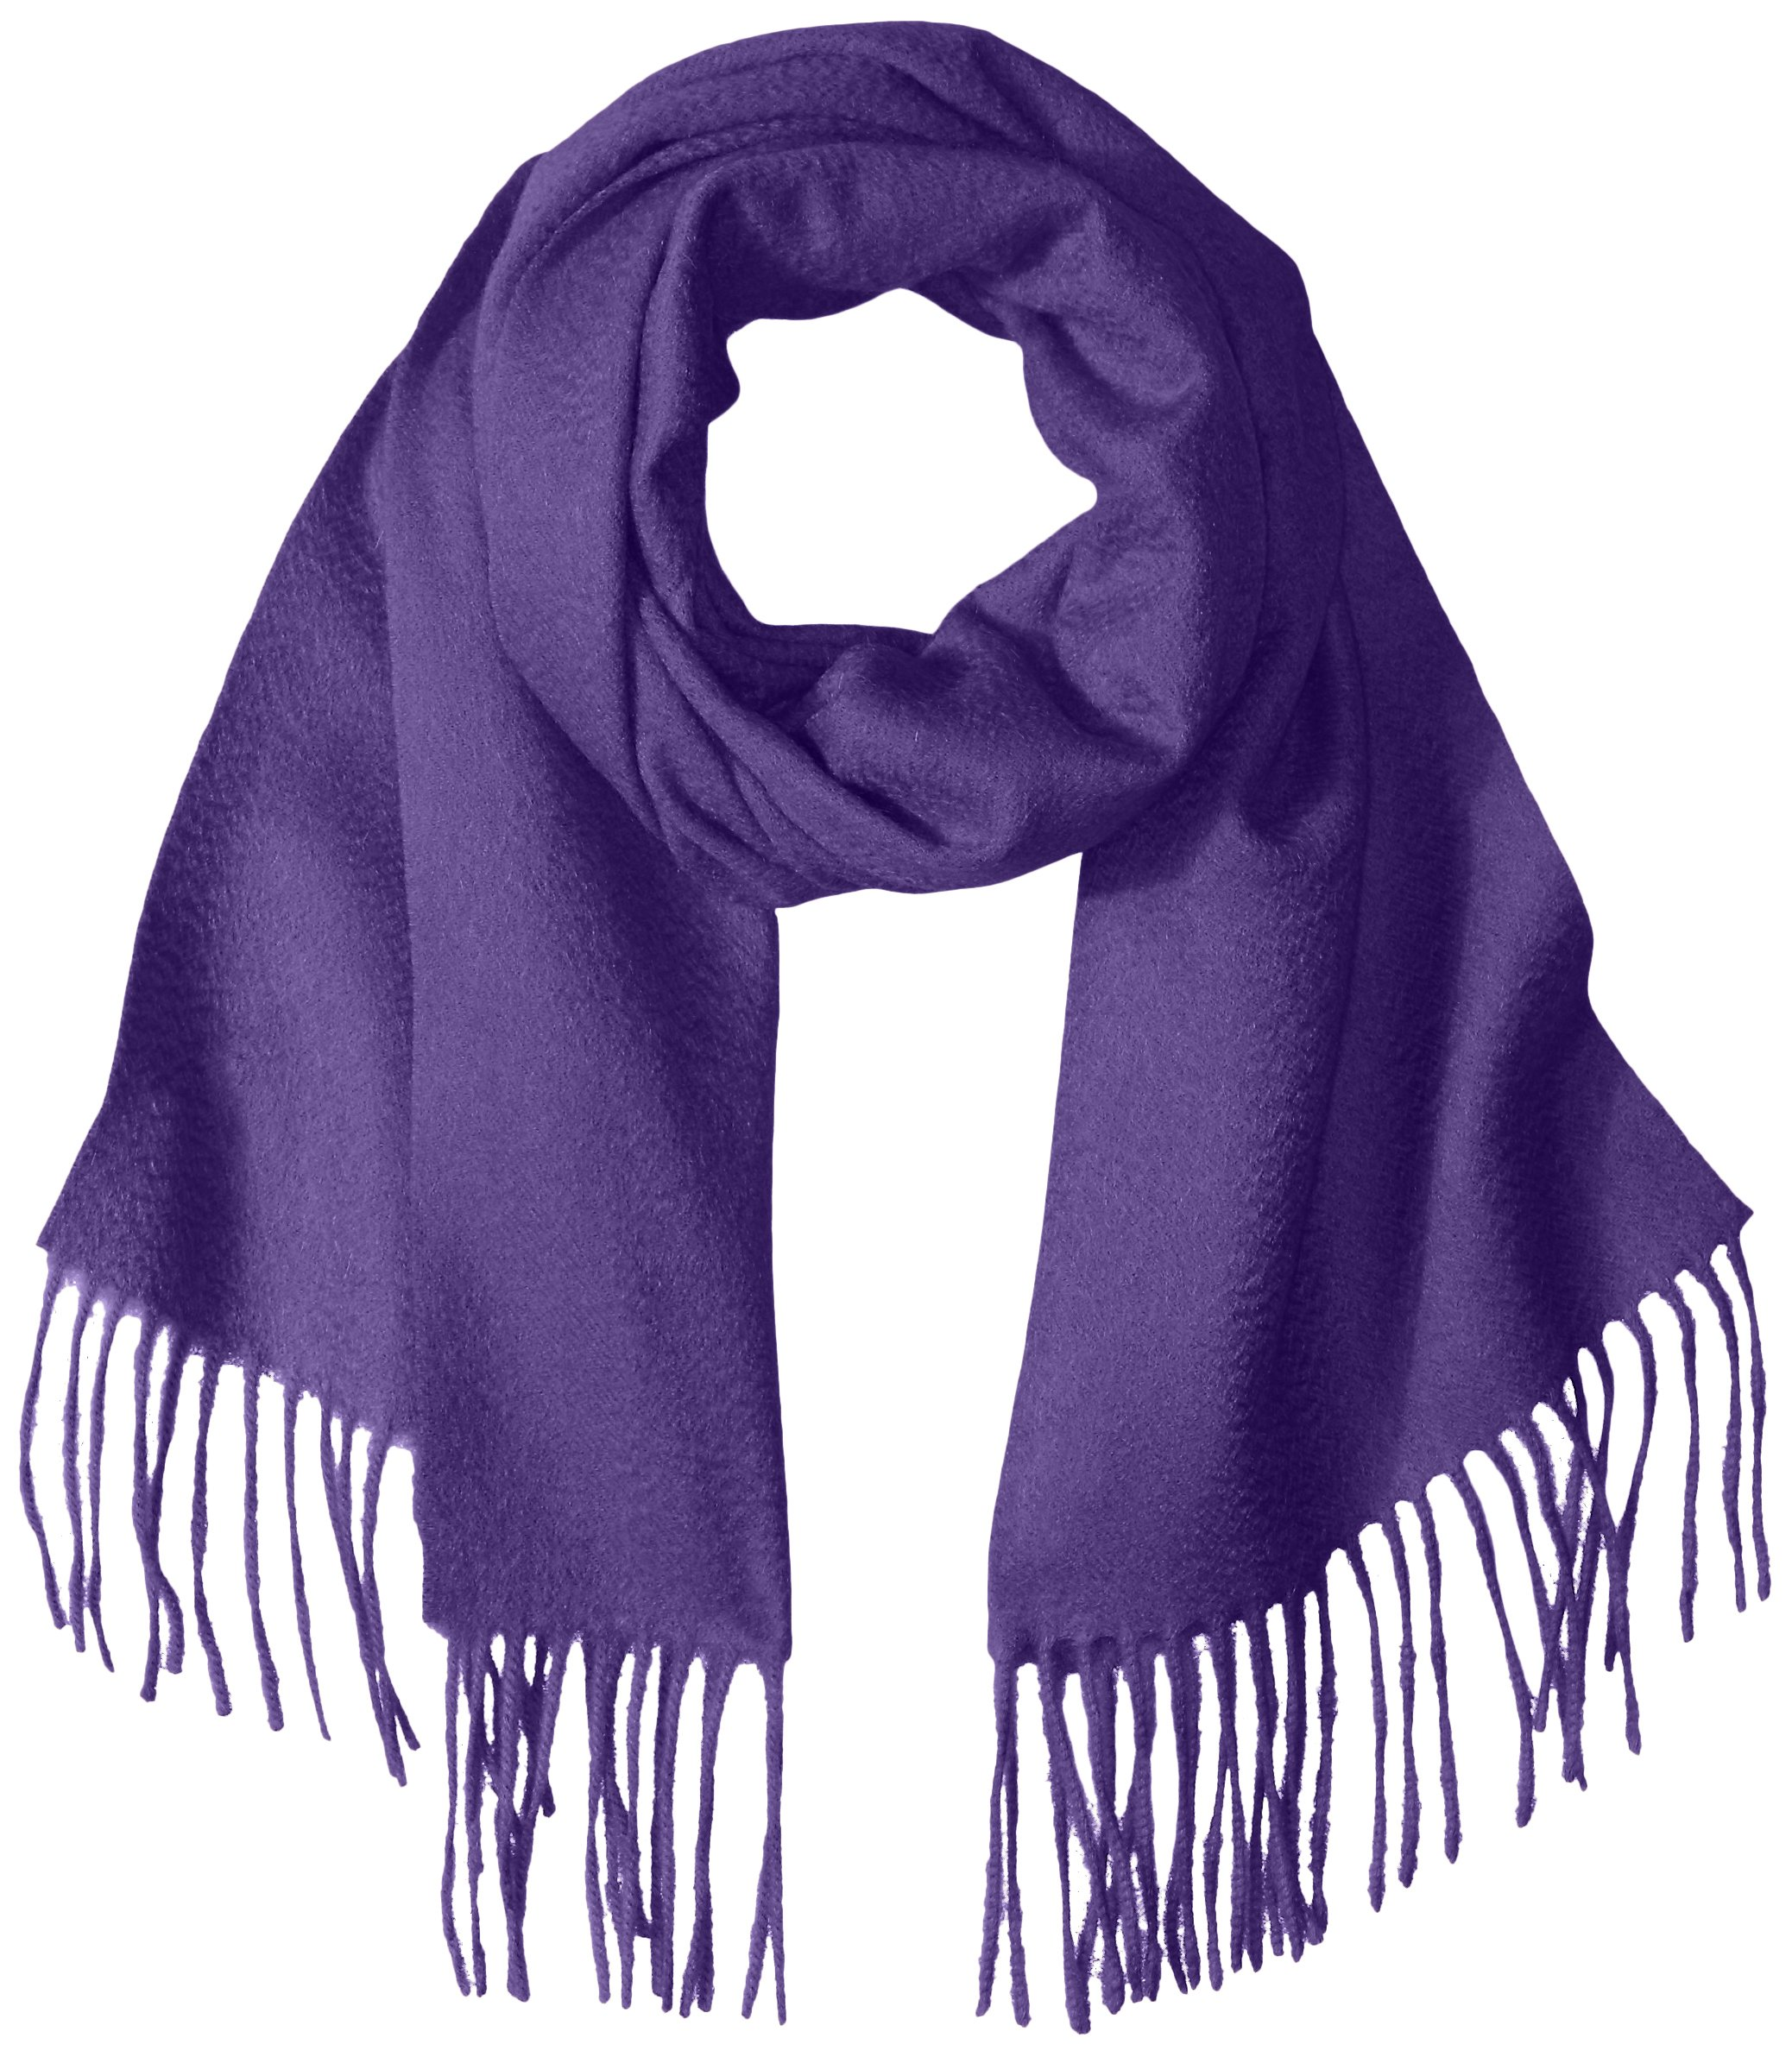 Sofia Cashmere Women's Woven Scarf with Fringe, Ametista, One Size